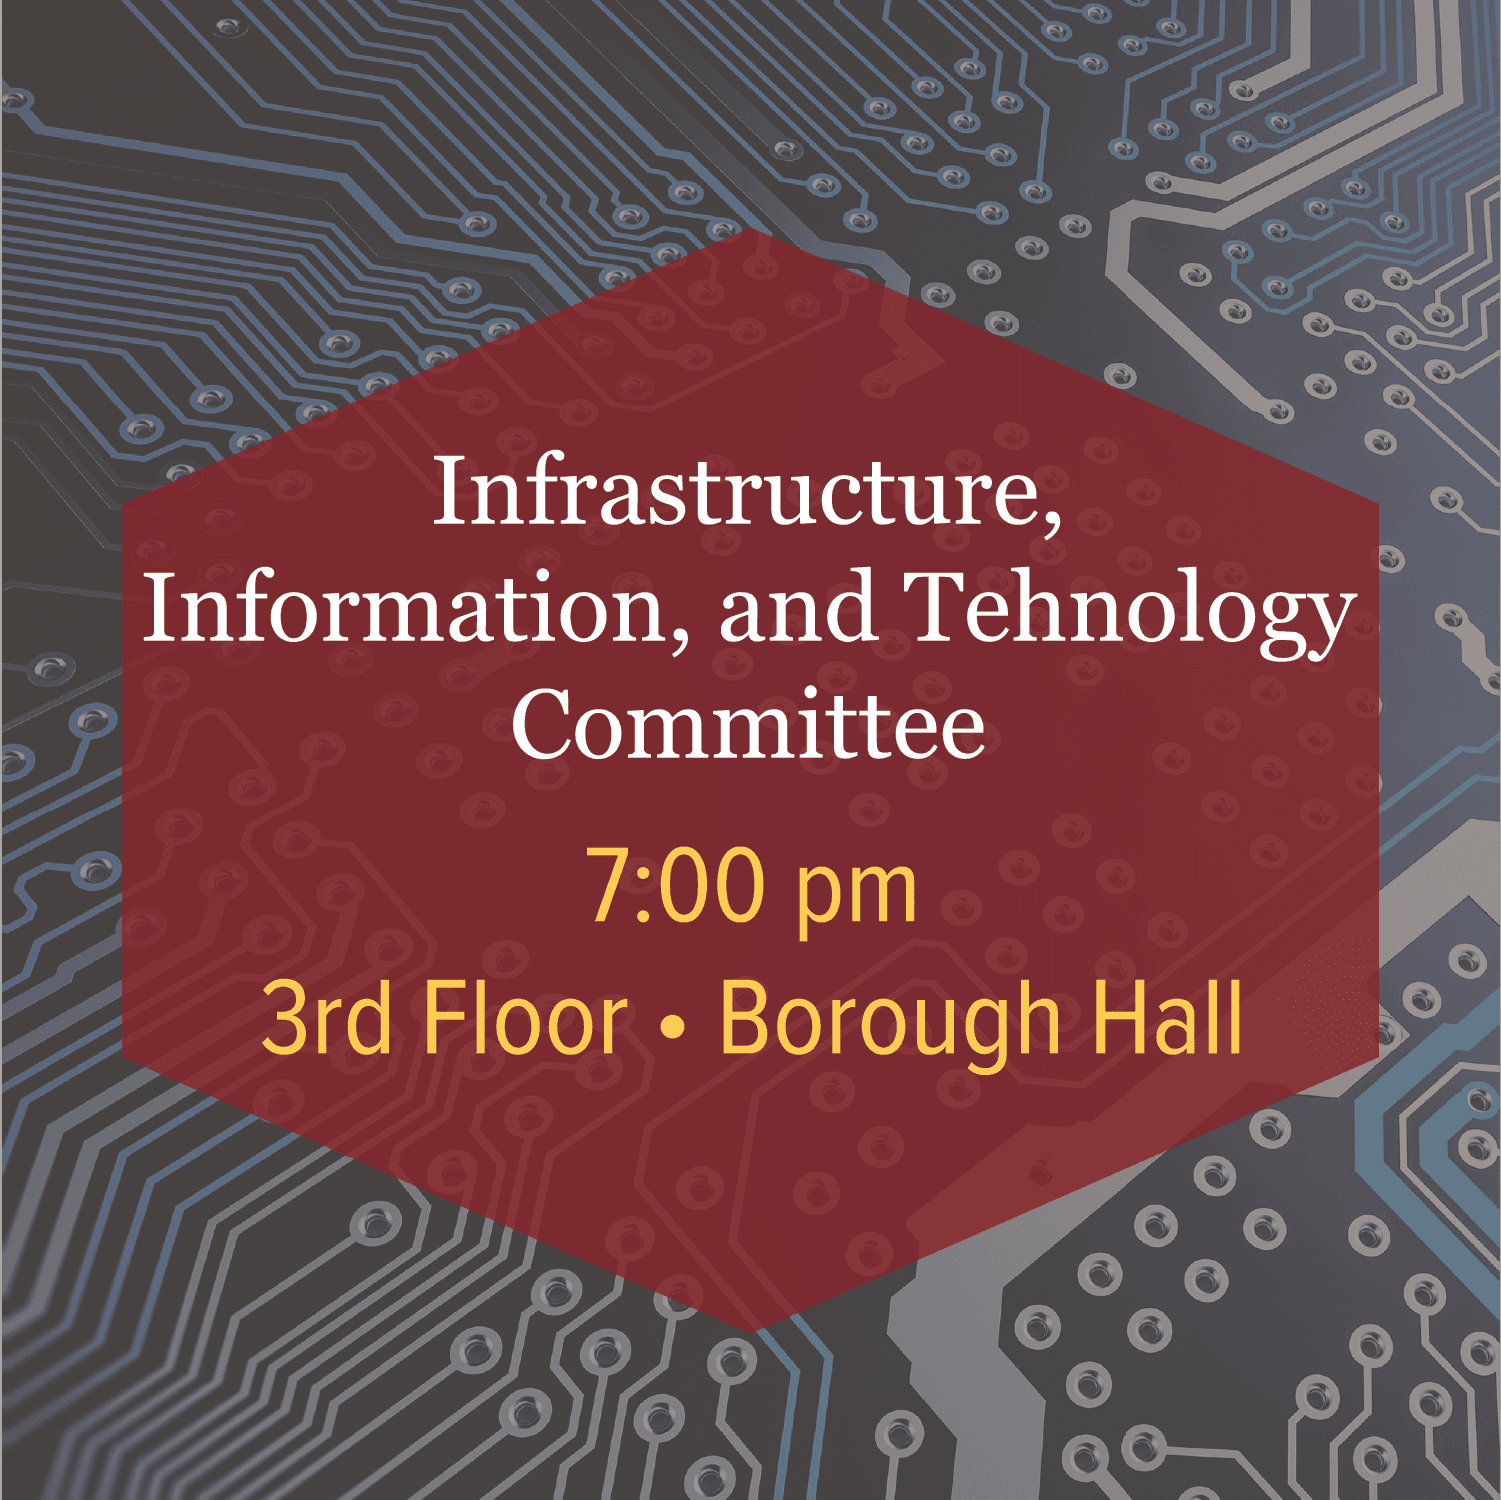 Infrastructure, Information, and Technology Meeting